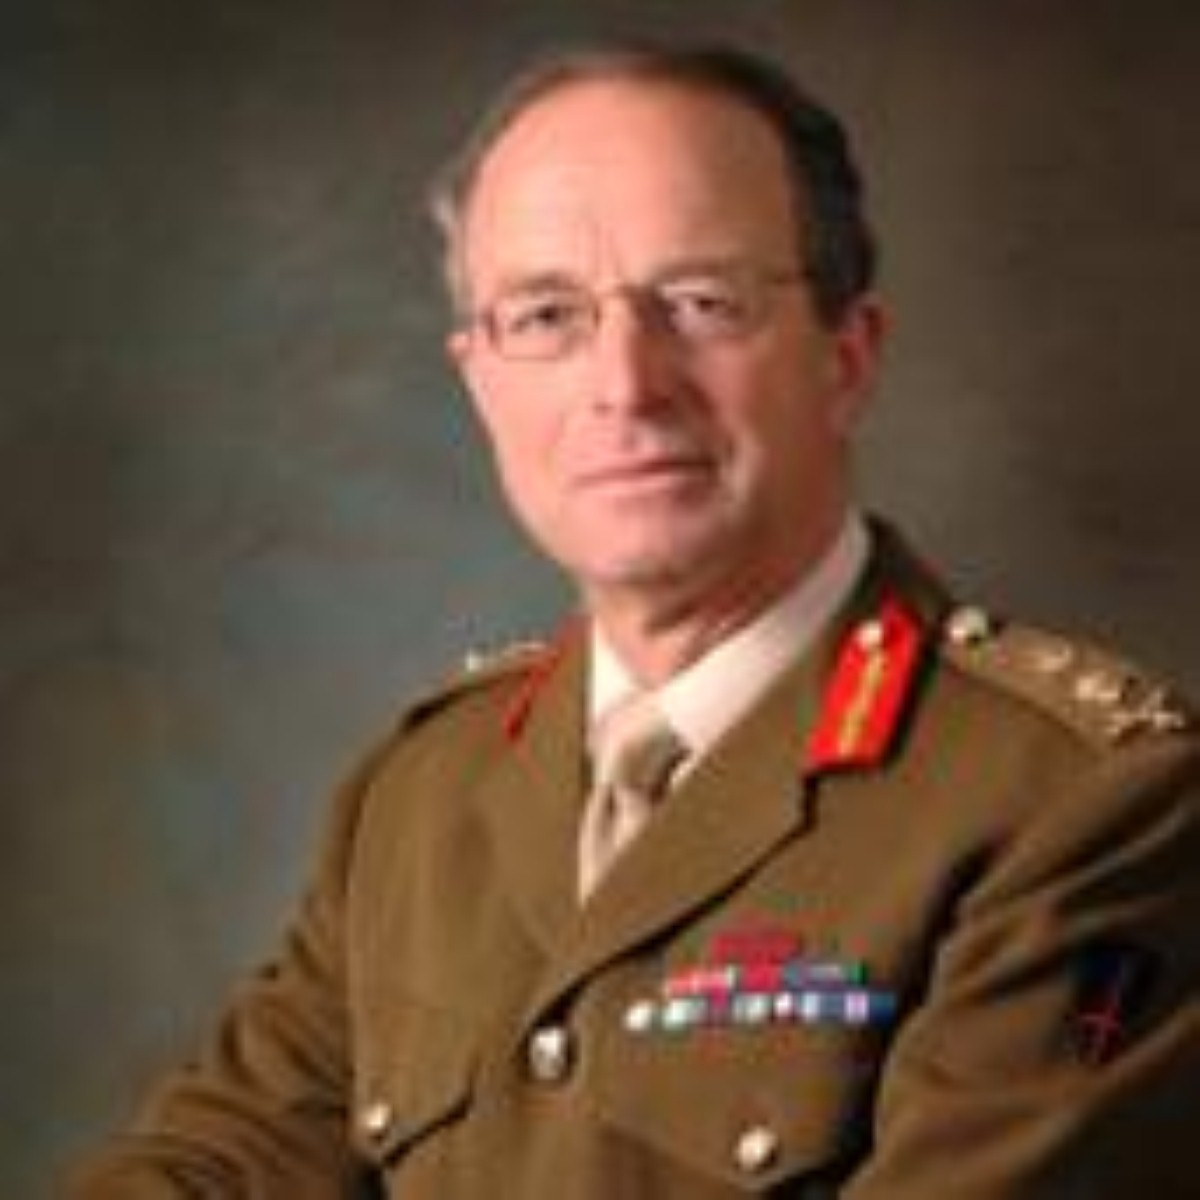 General Sir David Richards warned about the effect of cuts from the 2010 strategic defence and security review on Britain's global influence.